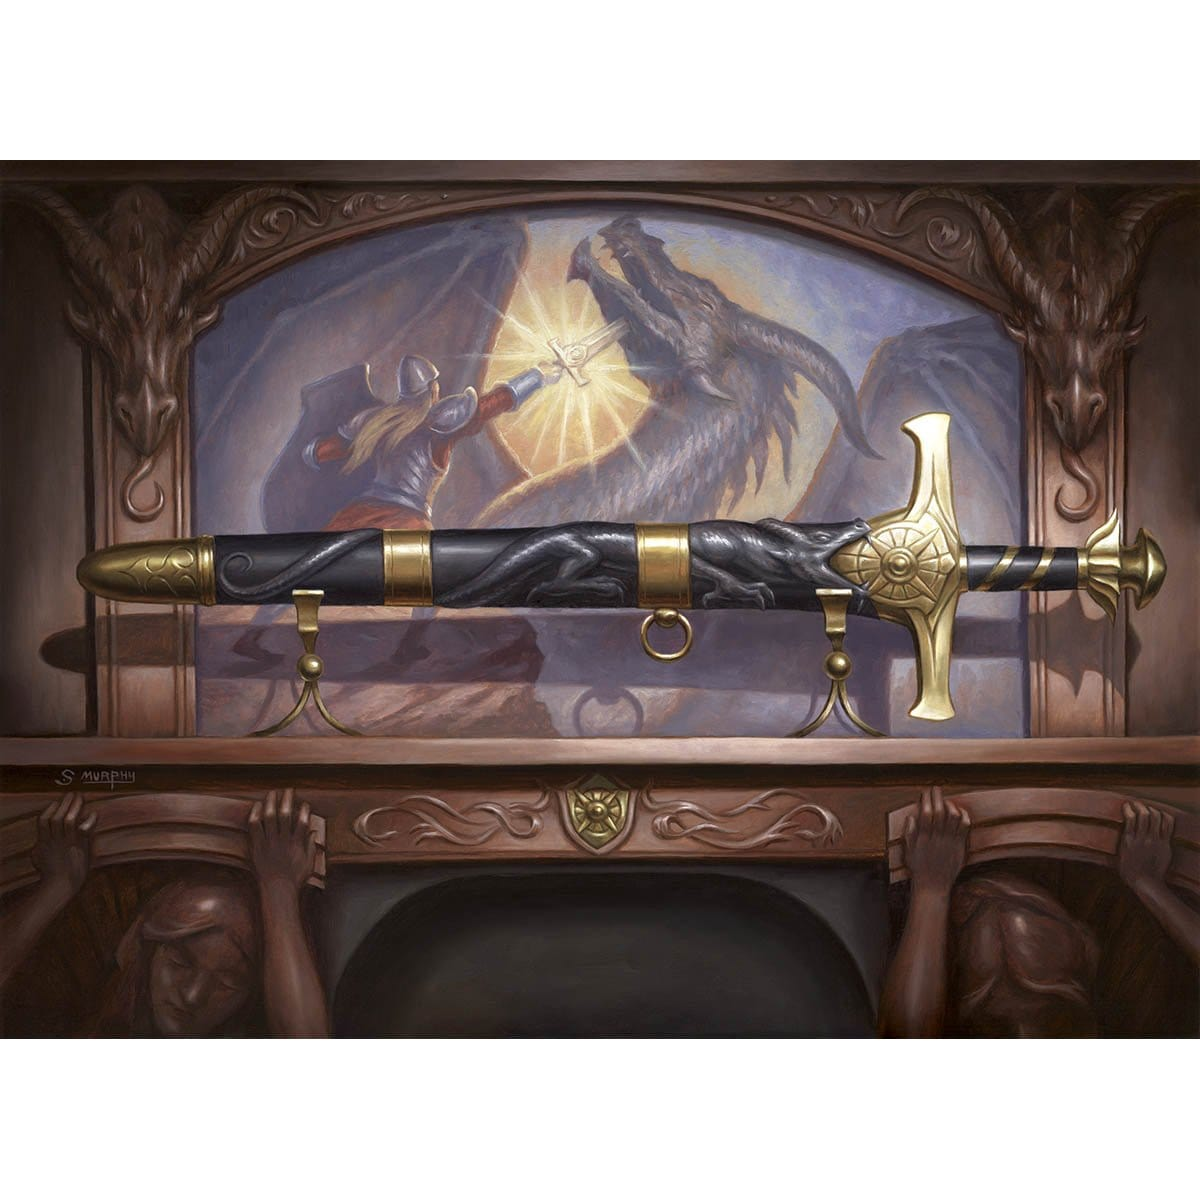 Ancestral Blade Print - Print - Original Magic Art - Accessories for Magic the Gathering and other card games